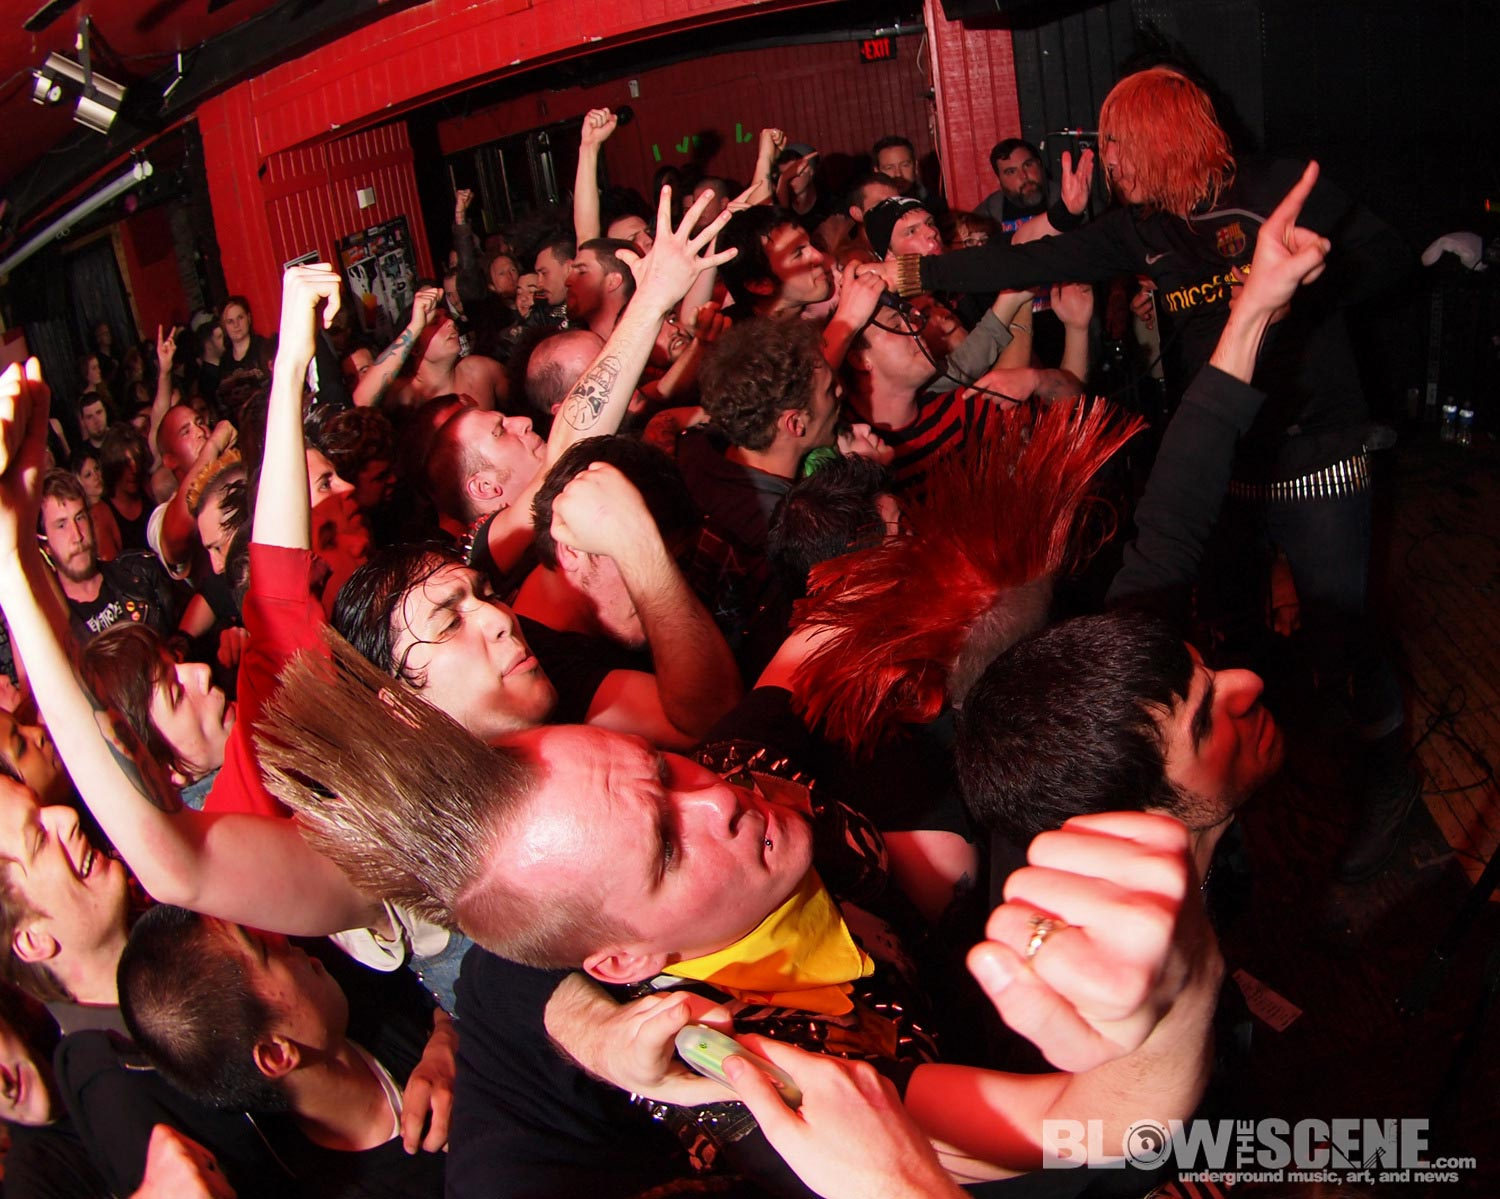 Casualties toxic holocaust night birds combat crisis philly gallery